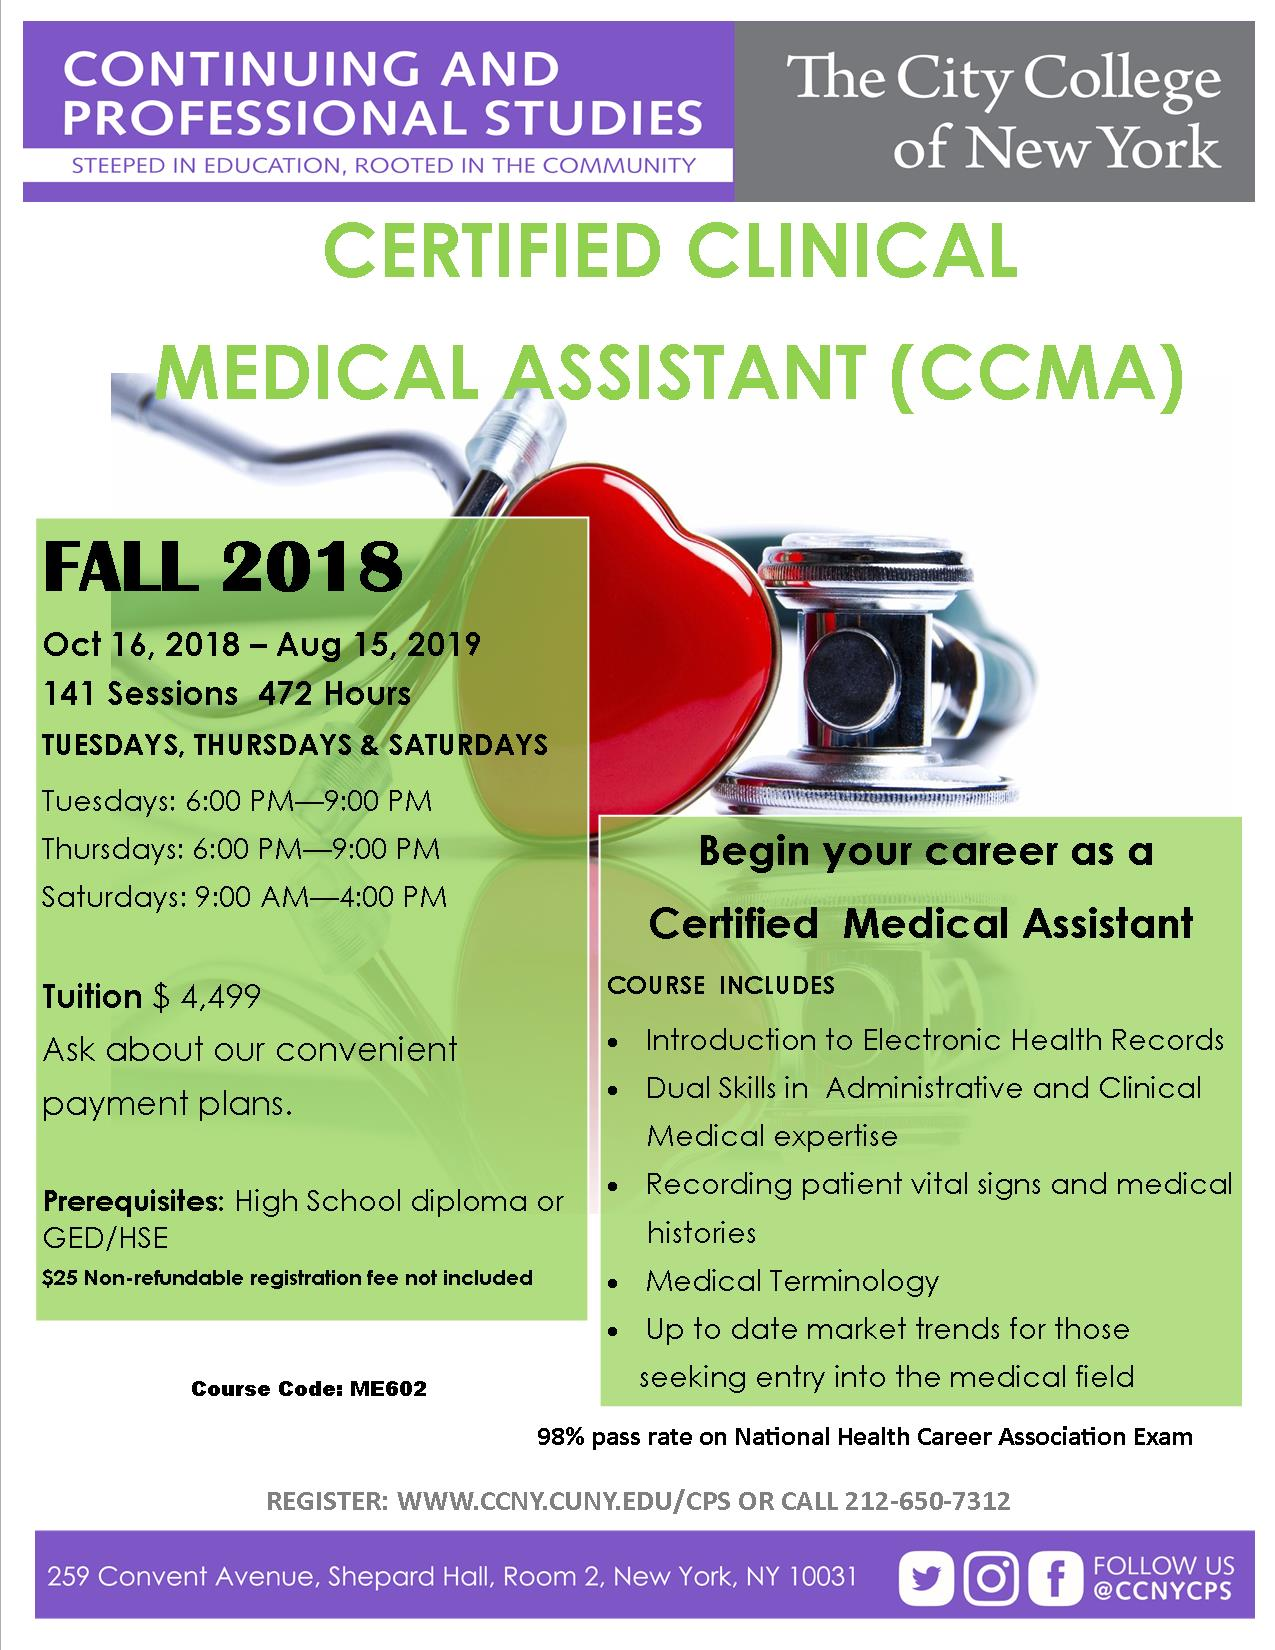 Certified Clinical Medical Assistant | The City College of New York